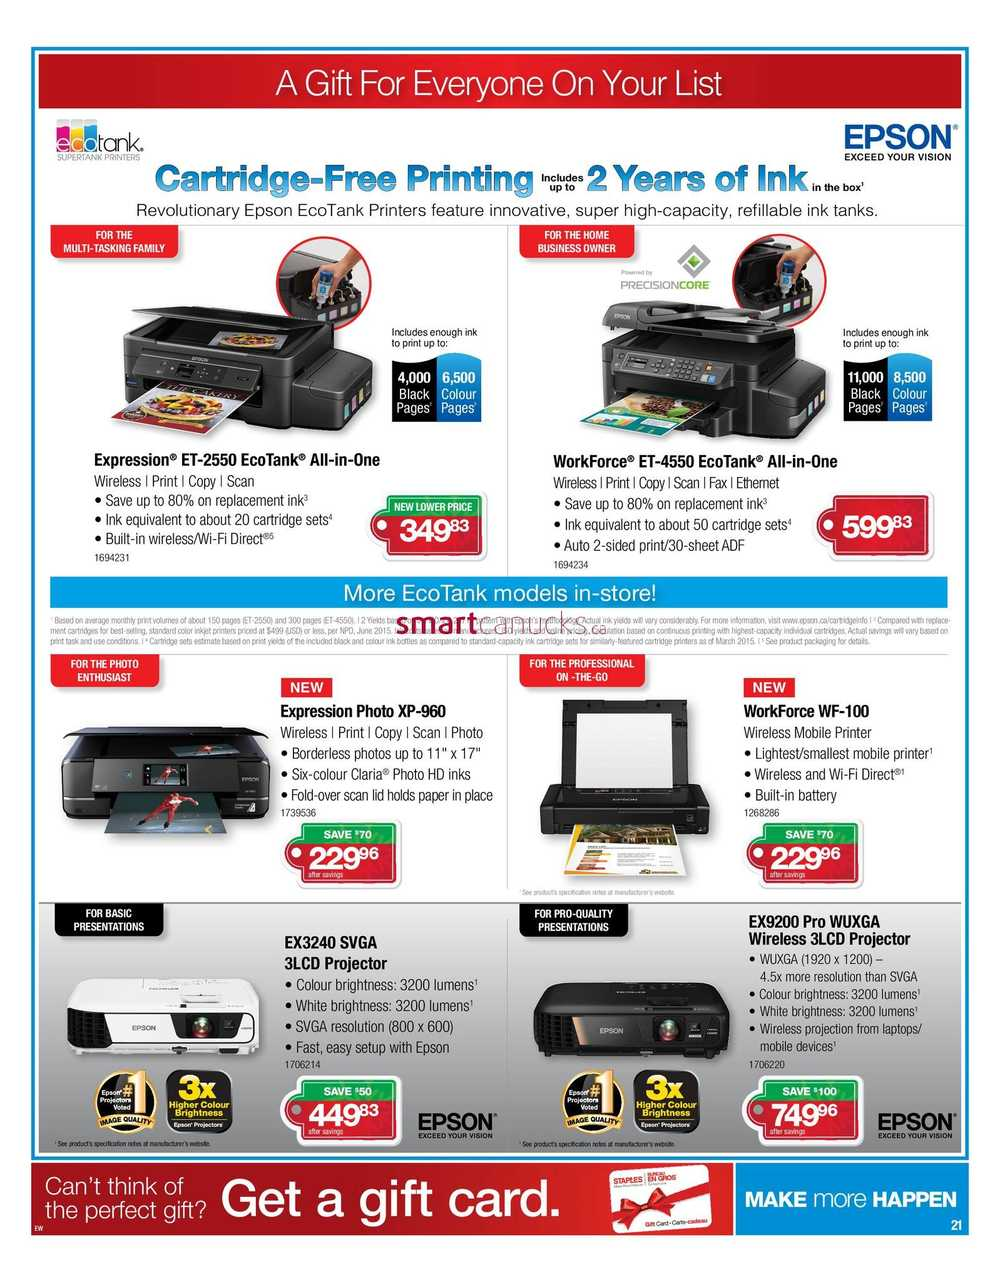 Staples online coupon codes free gift